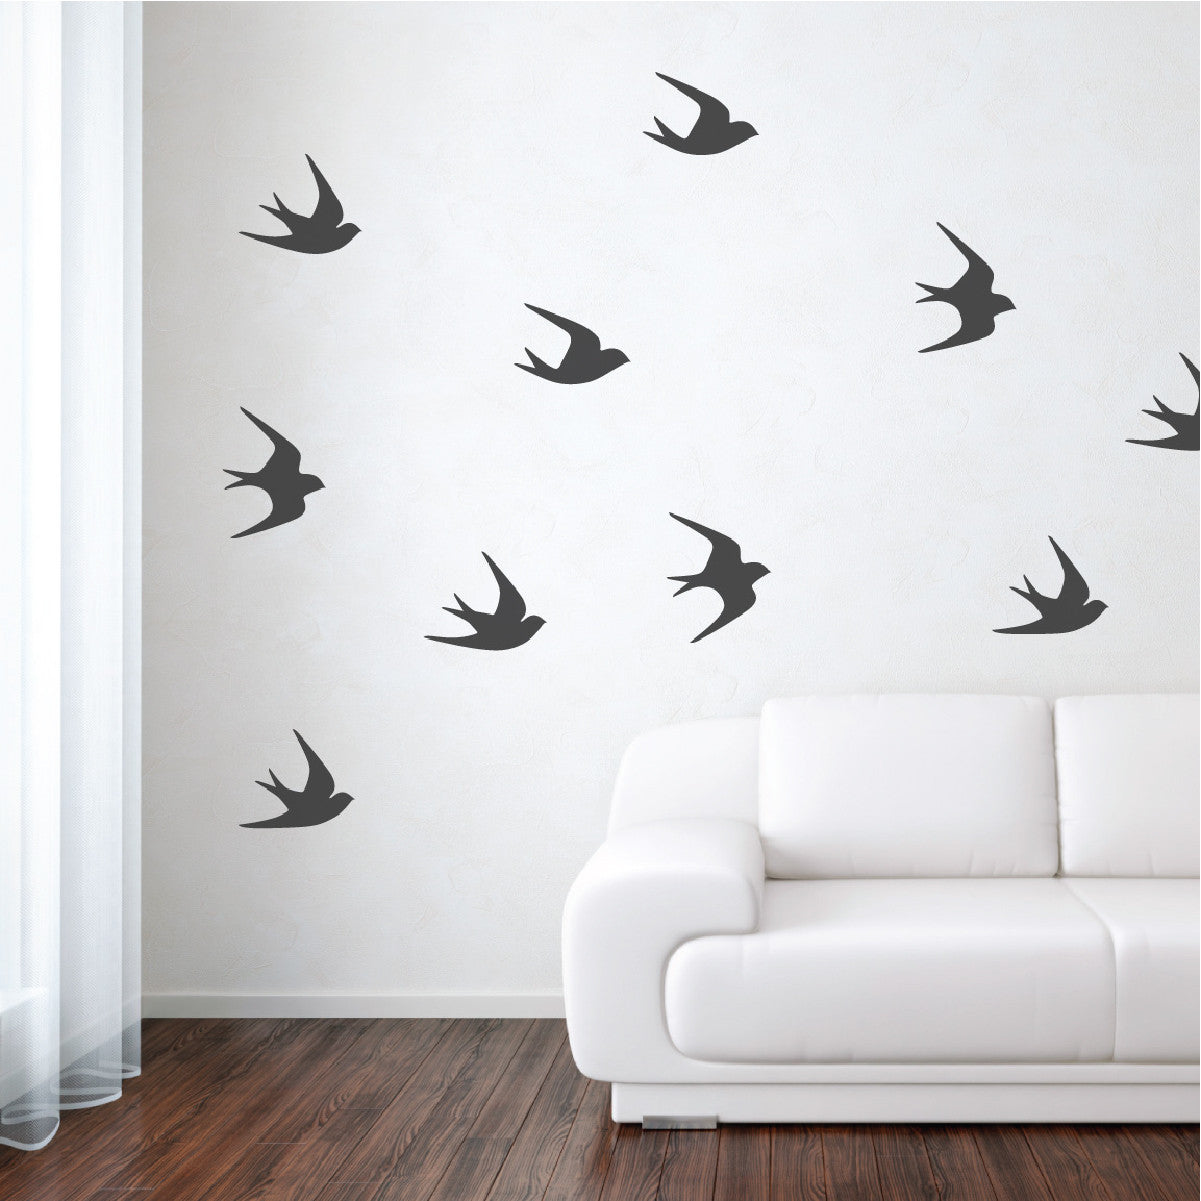 sparrows wall decals - Design Wall Decal